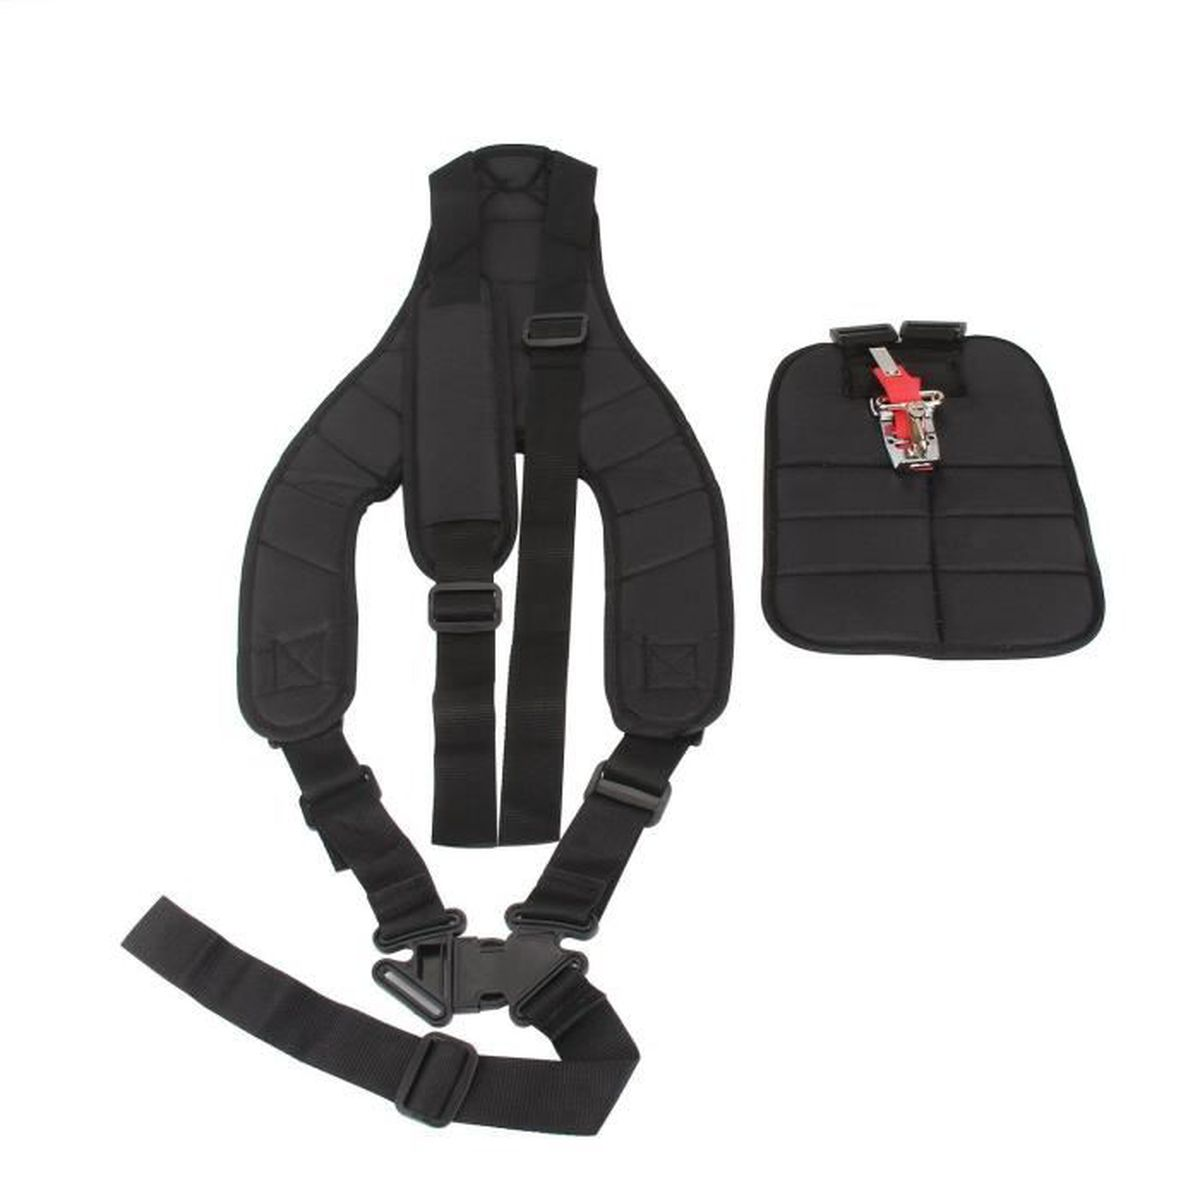 HARNAIS DEBROUSSAILLEUSE DOUBLE PROTECTION LATERALE